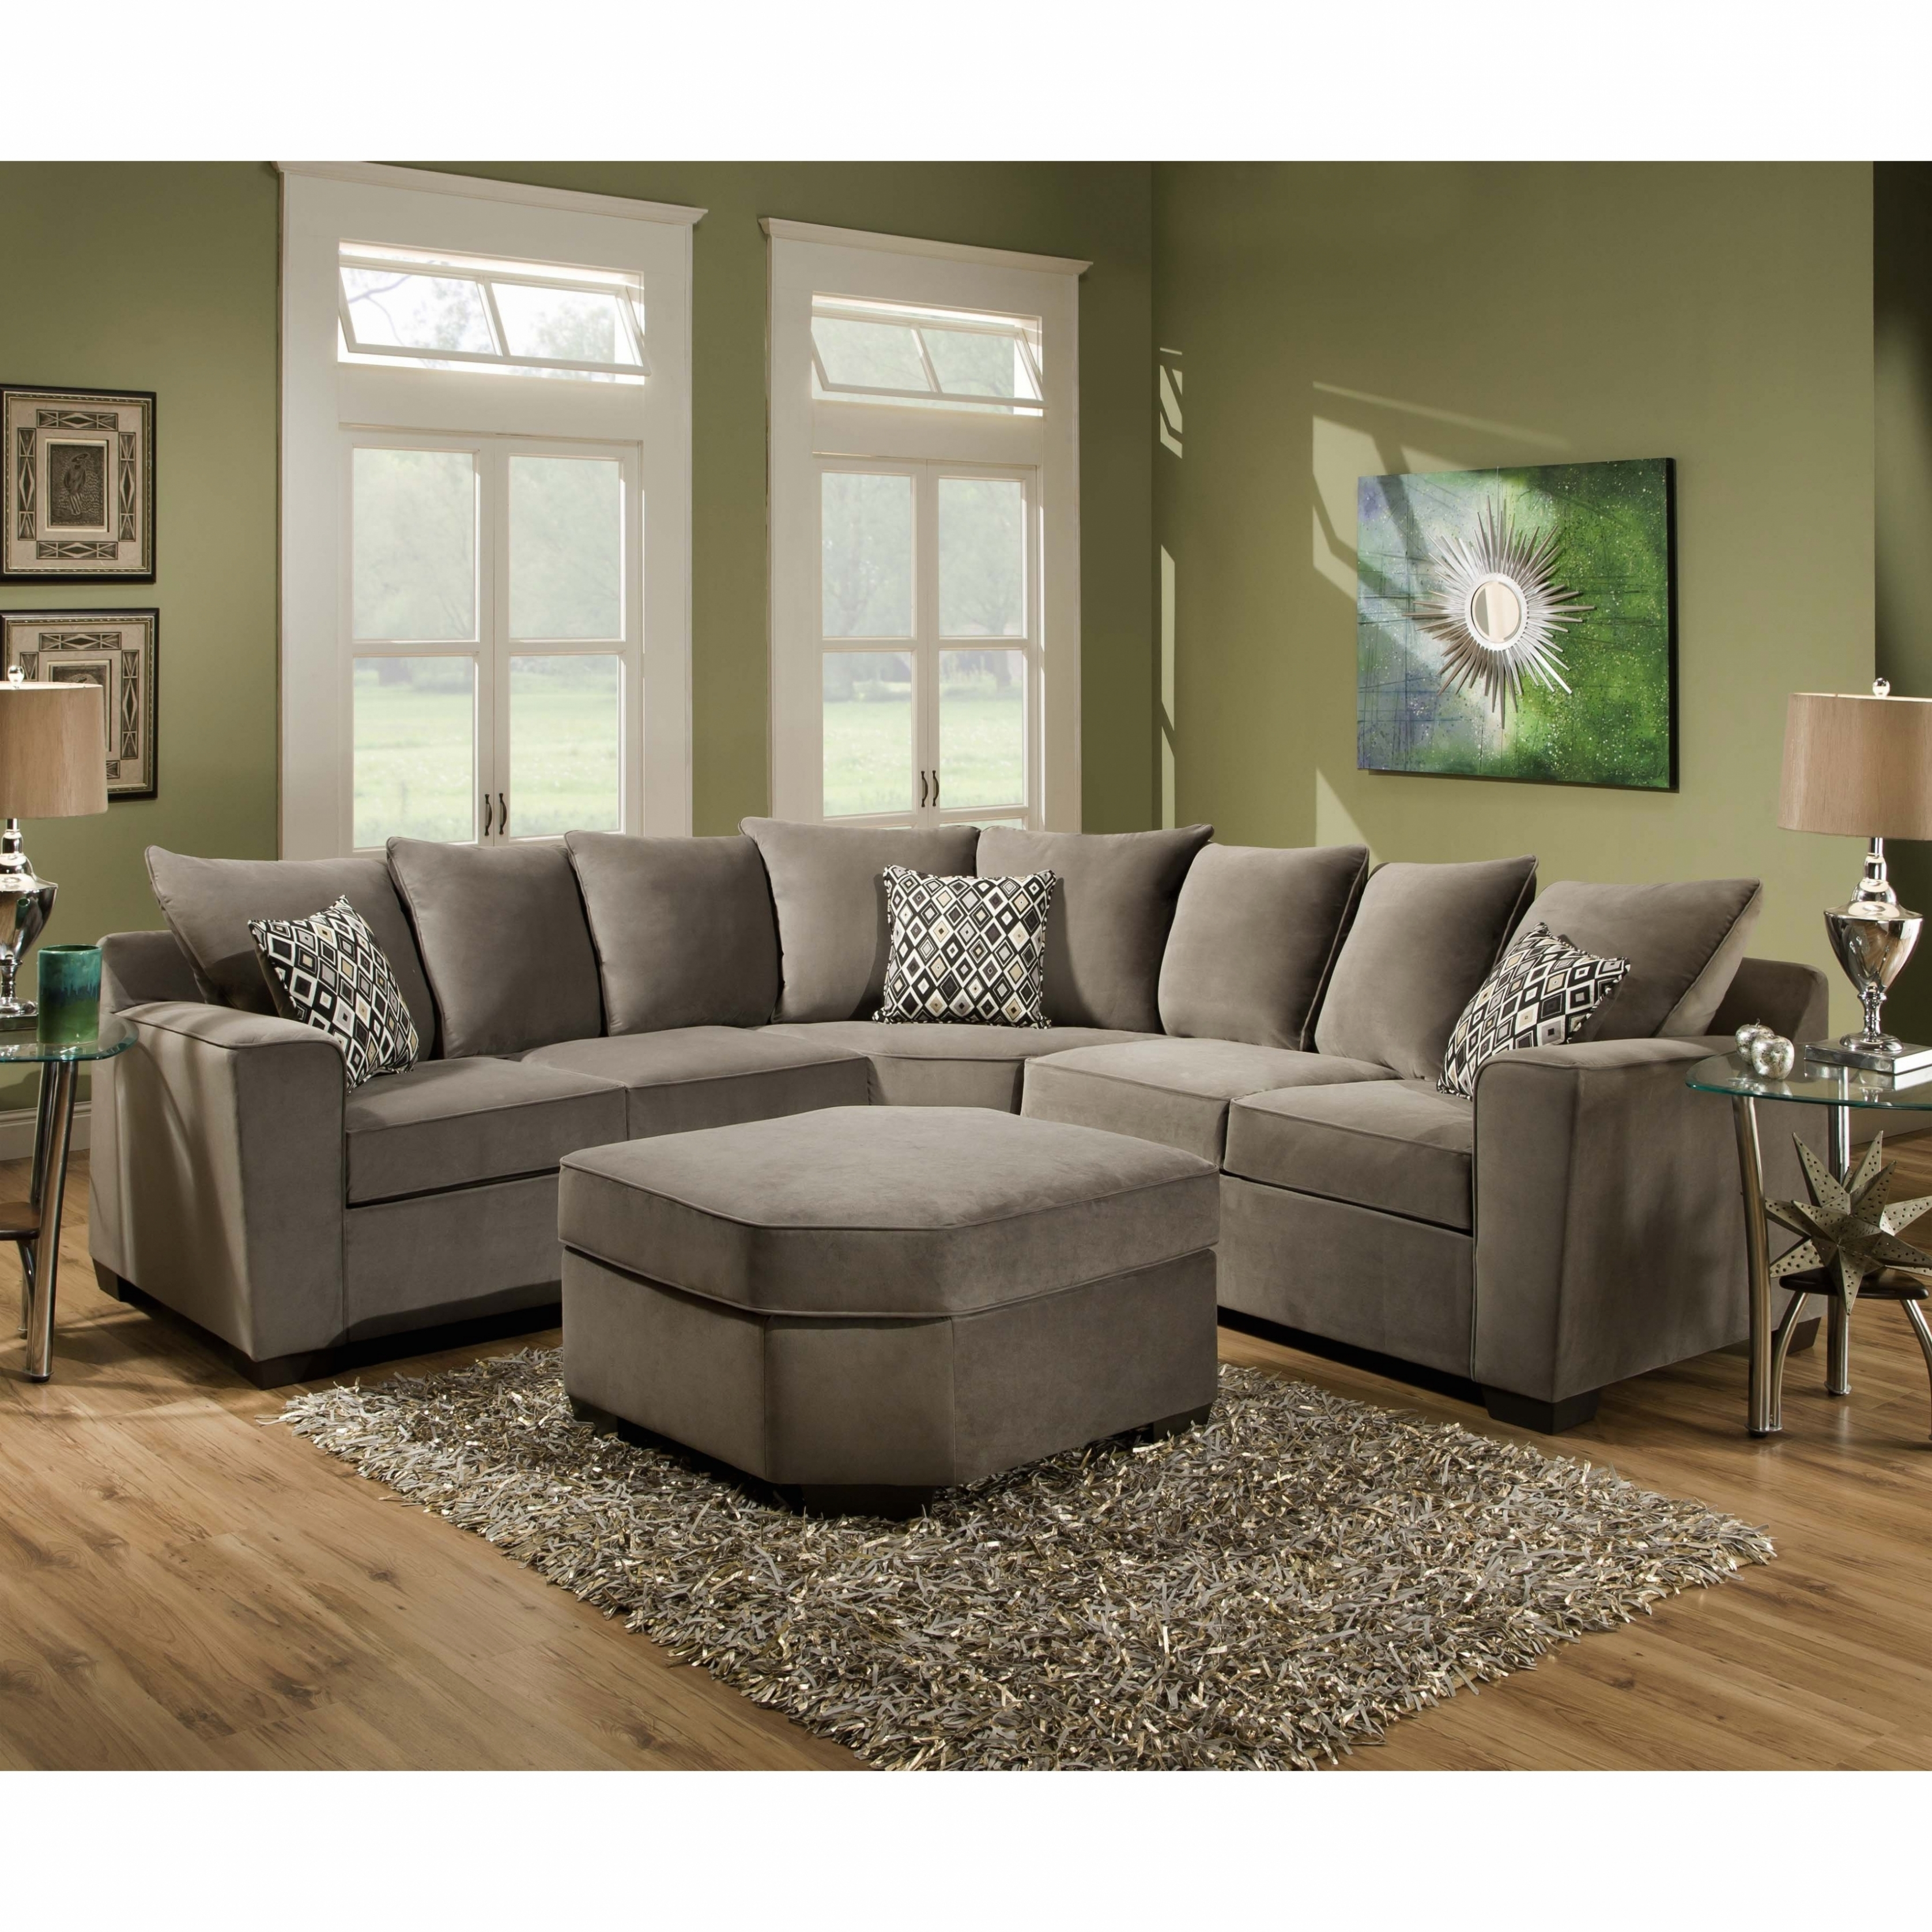 ... 20 Photos Sectional Sofas At Havertys